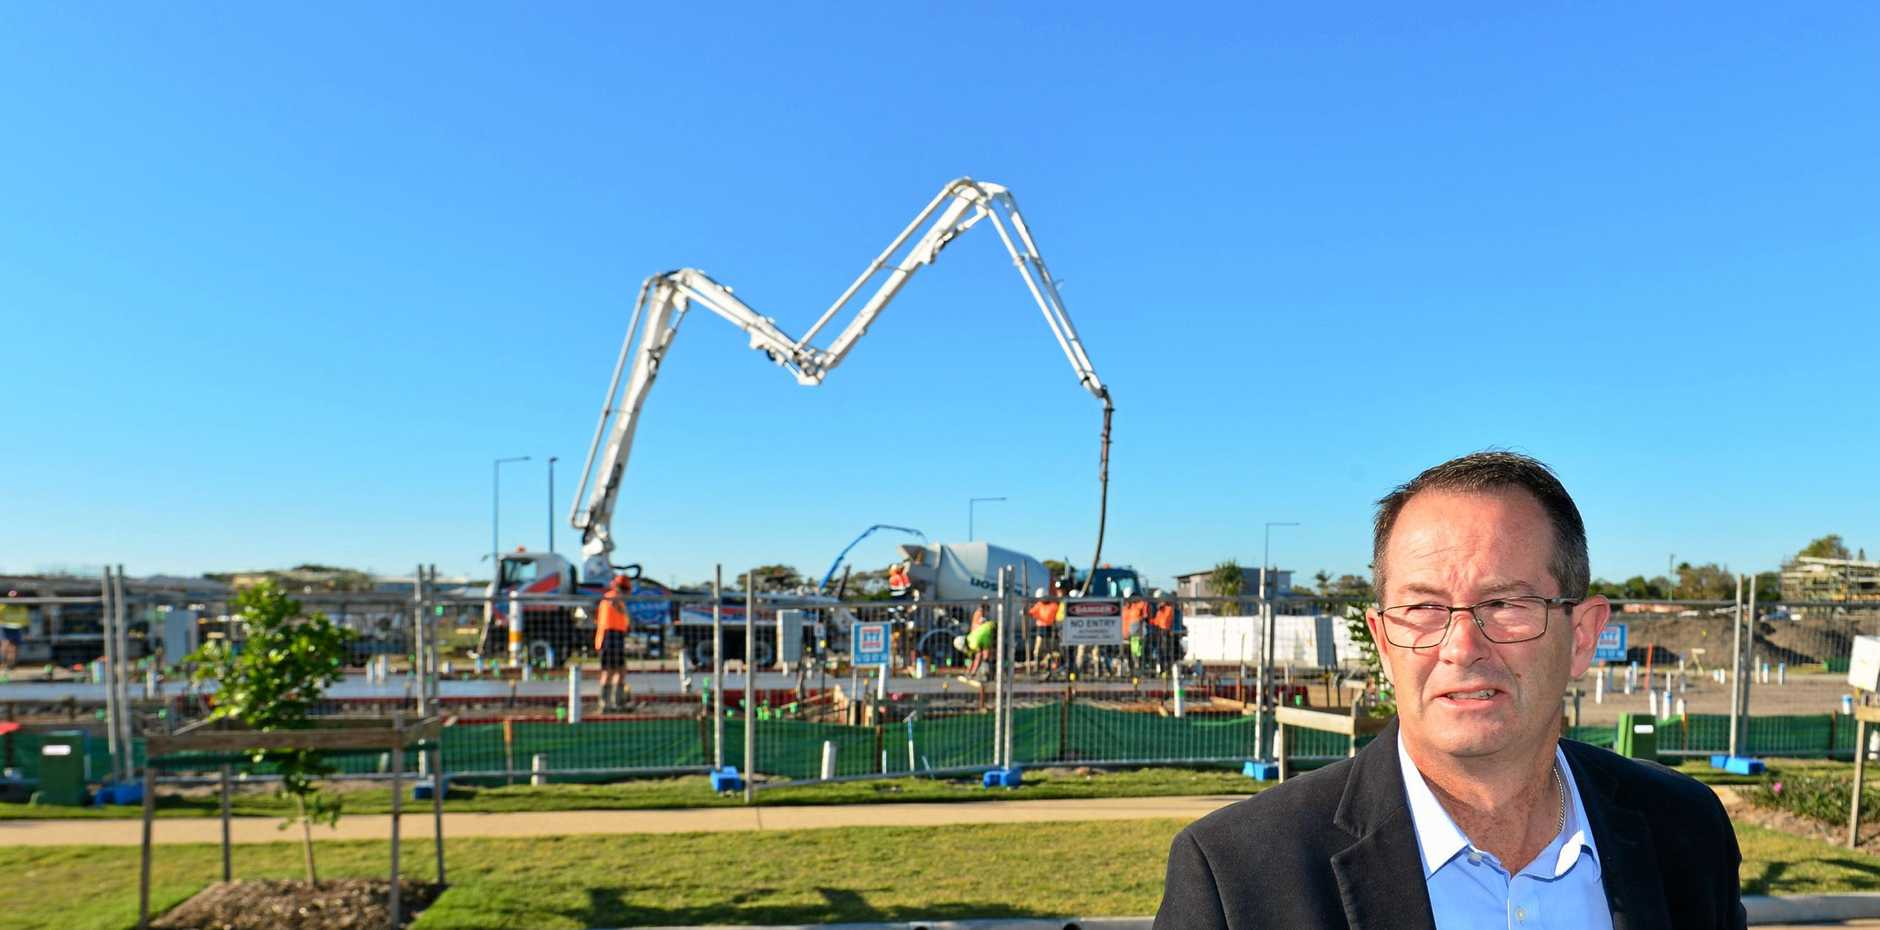 CONSTRUCTION CRISIS: Federal Member for Fisher Andrew Wallace has called for Queensland Housing Minister Mick de Brenni to resign over the professional indemnity crisis wich he said had the potential to destroy the state's building industry.